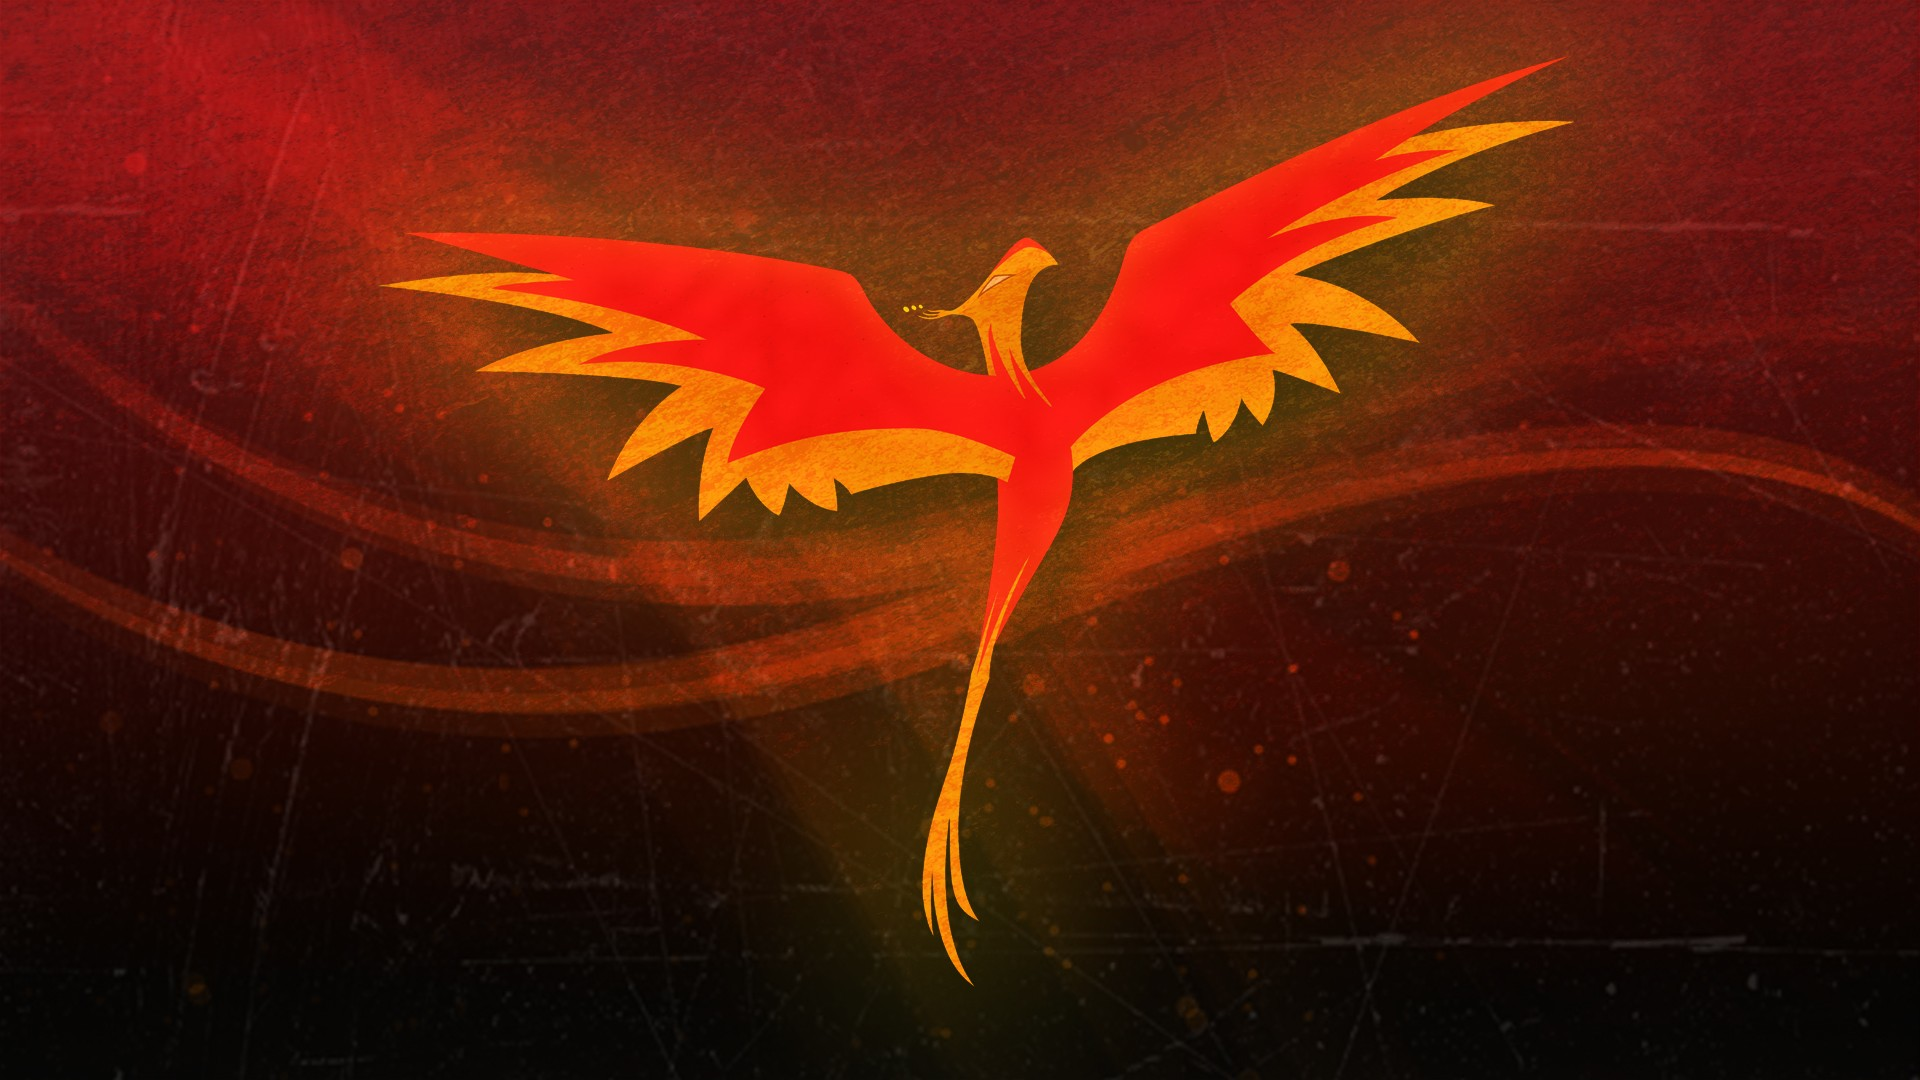 phoenix wallpaper pony little images 1920x1080 1920x1080